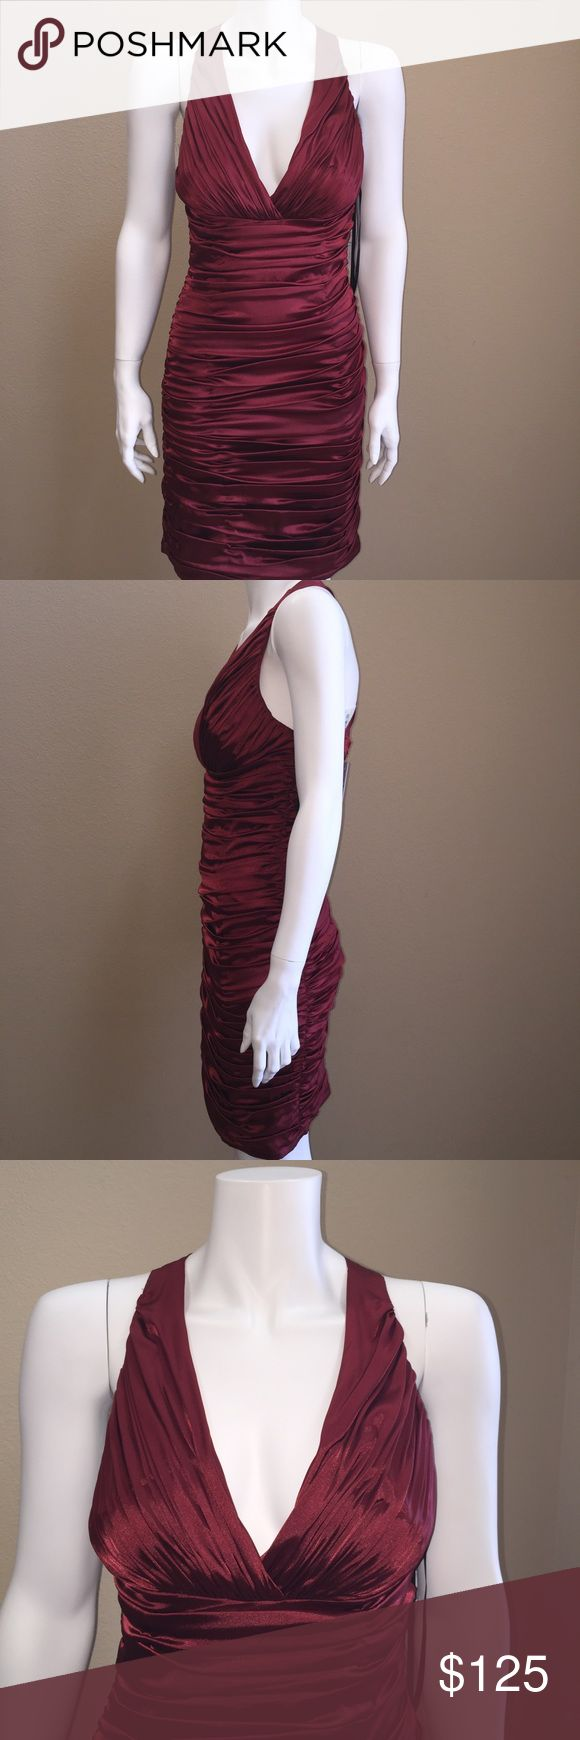 Laundry by shelli segal Perfect for the holidays ❤️COLOR IS Maroon Laundry by Shelli Segal Dresses Midi